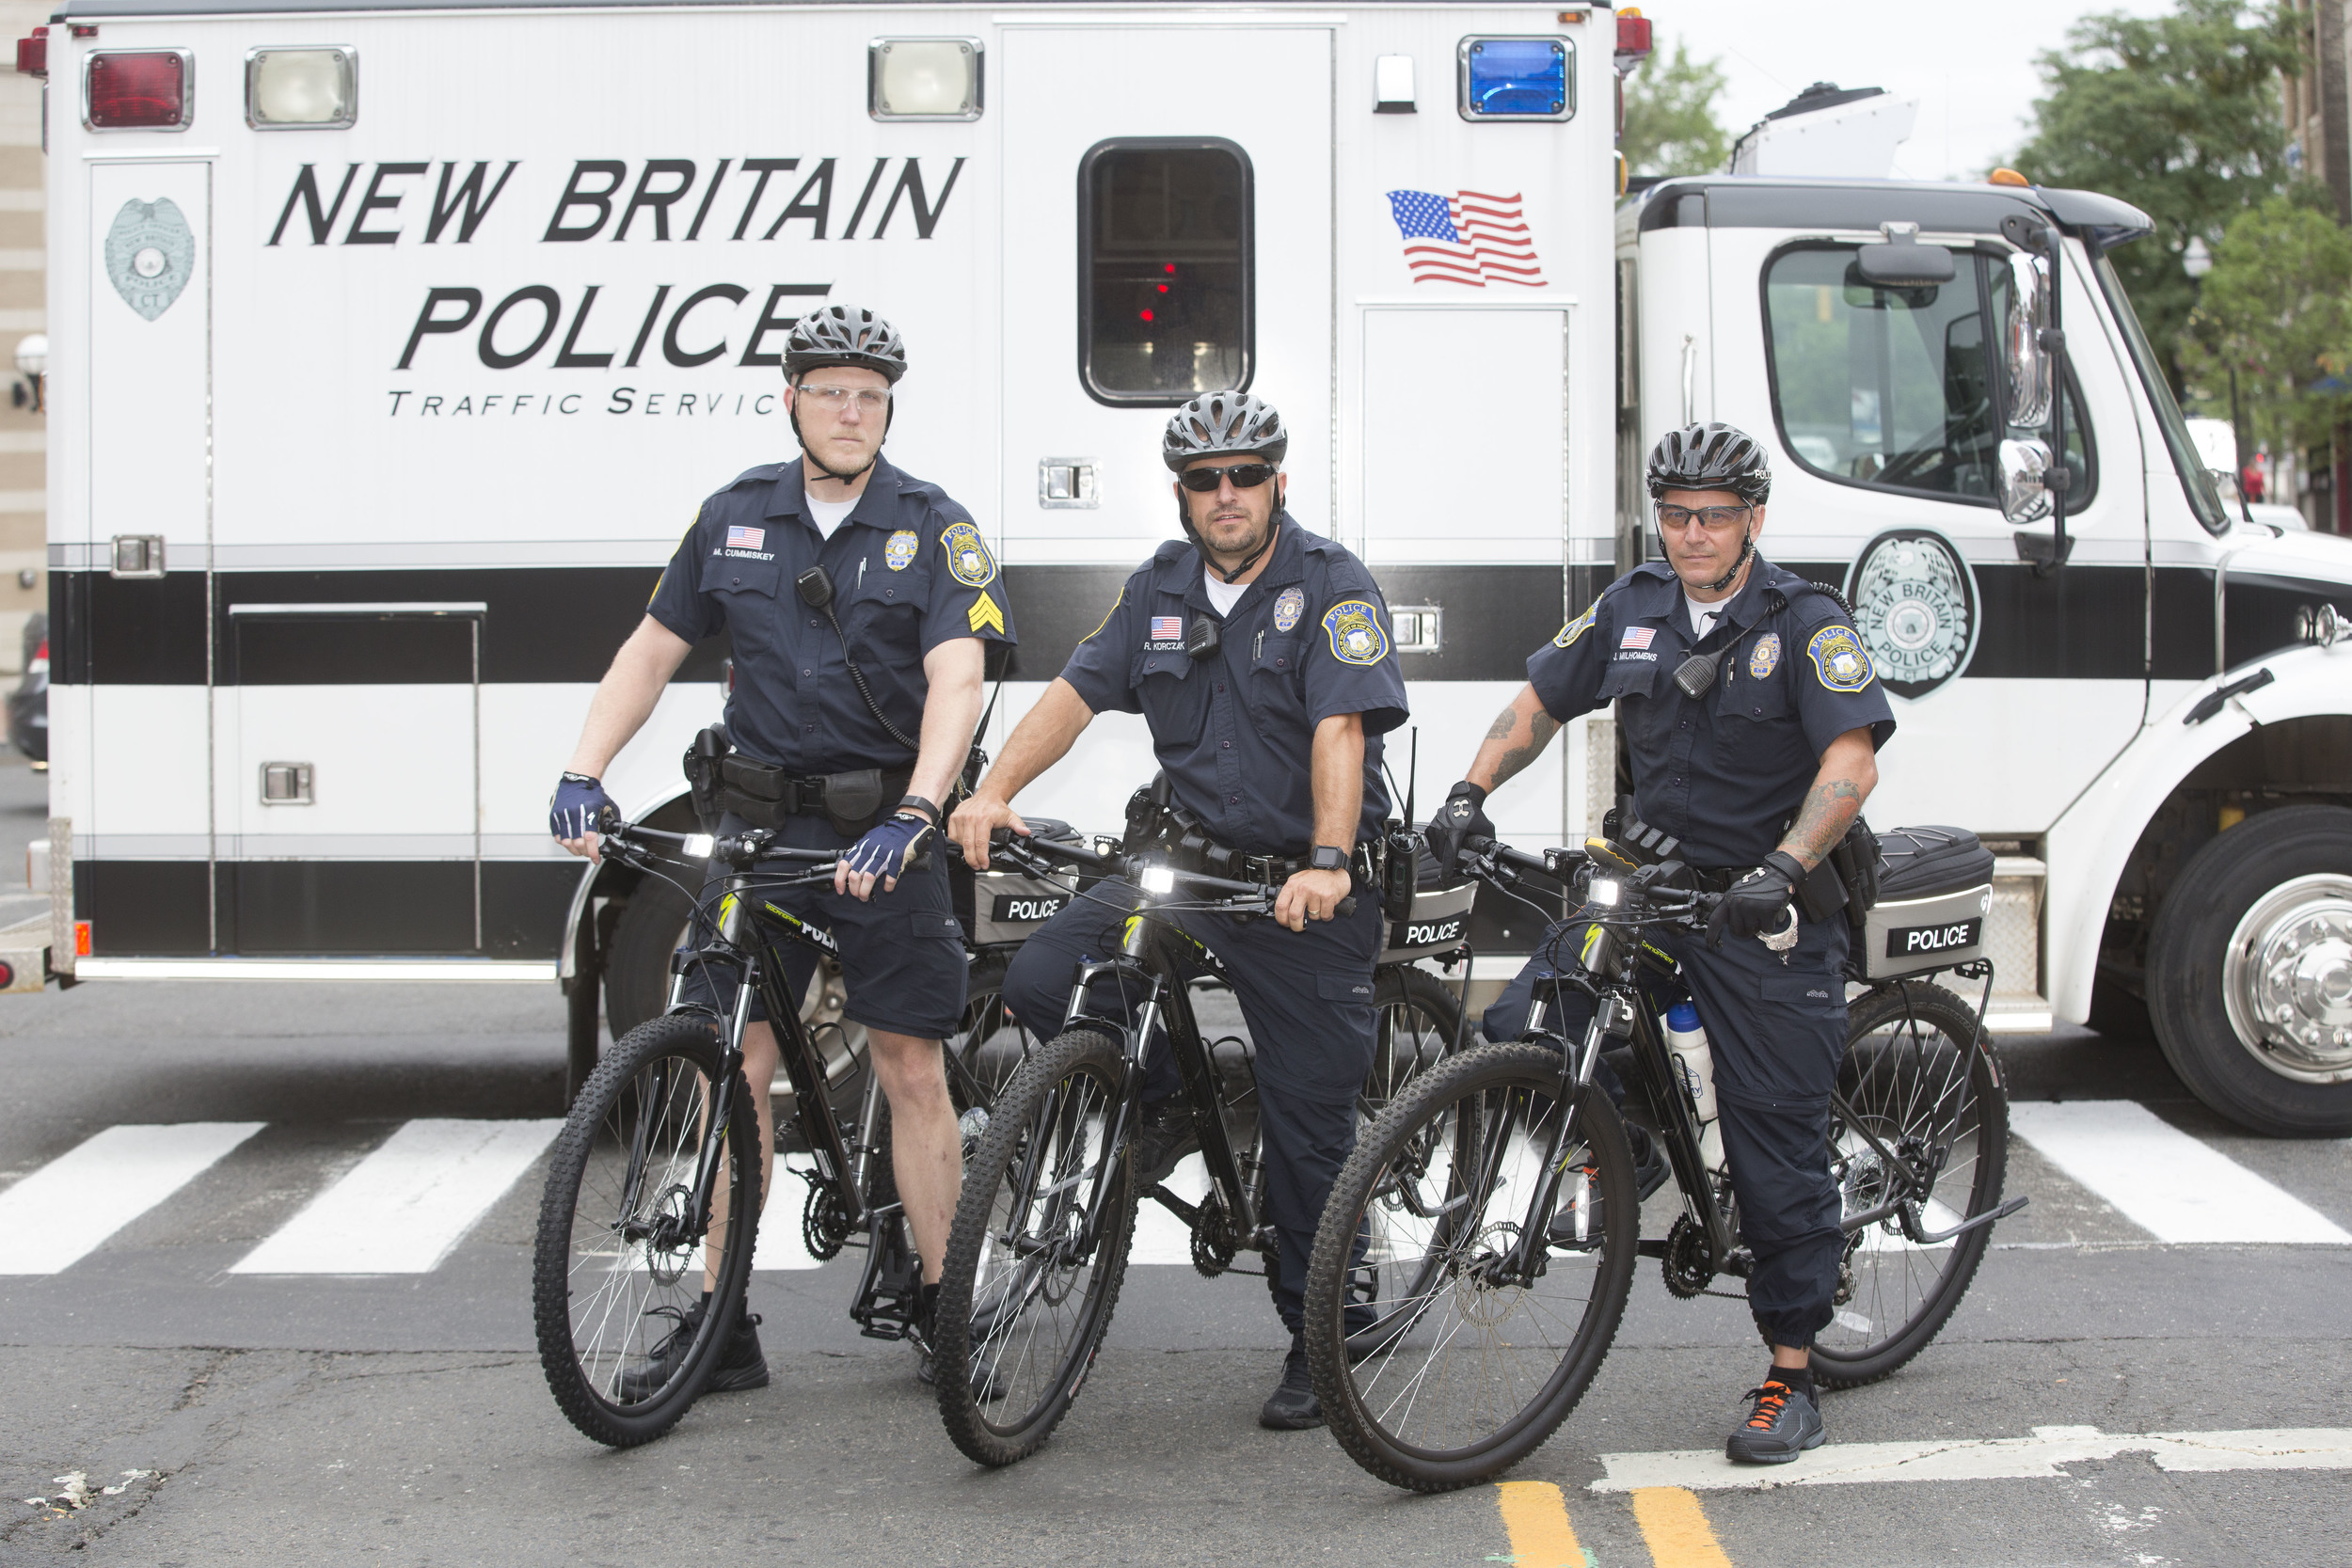 Members of the New Britain Police Department's Bike Squad.